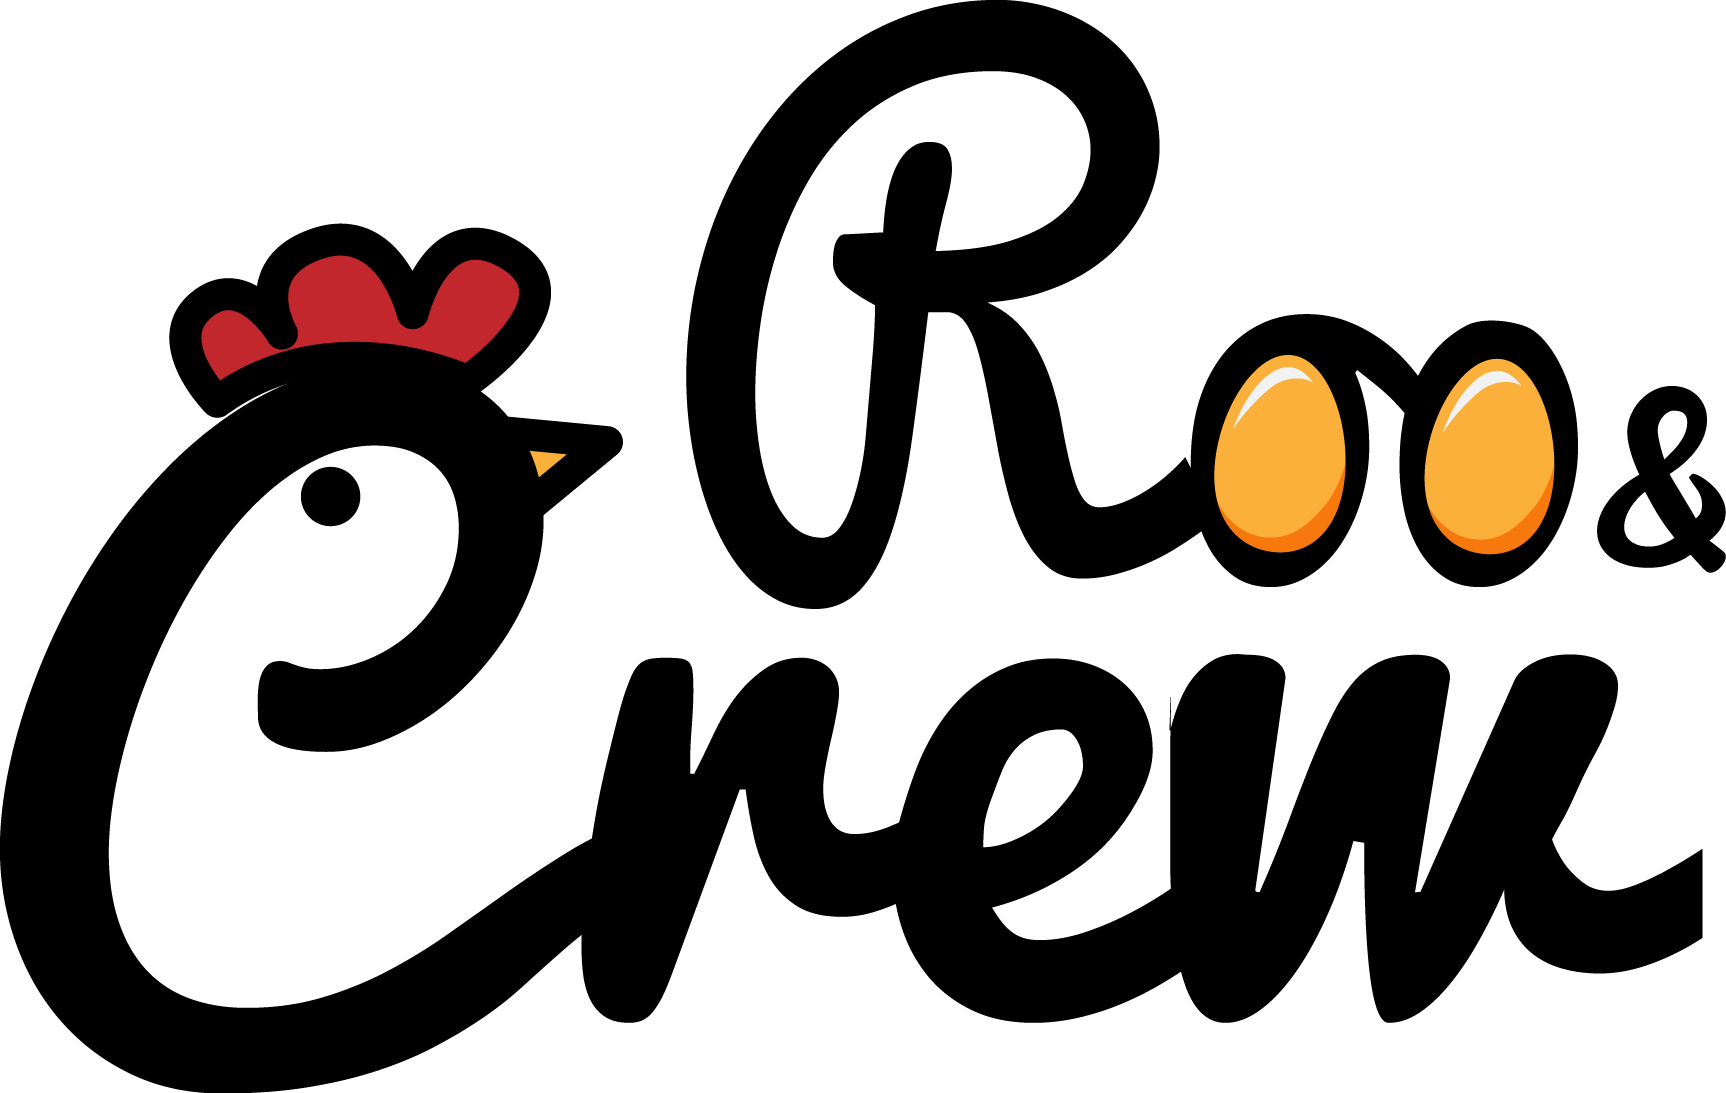 Hen clipart laid. Laying hens and egg